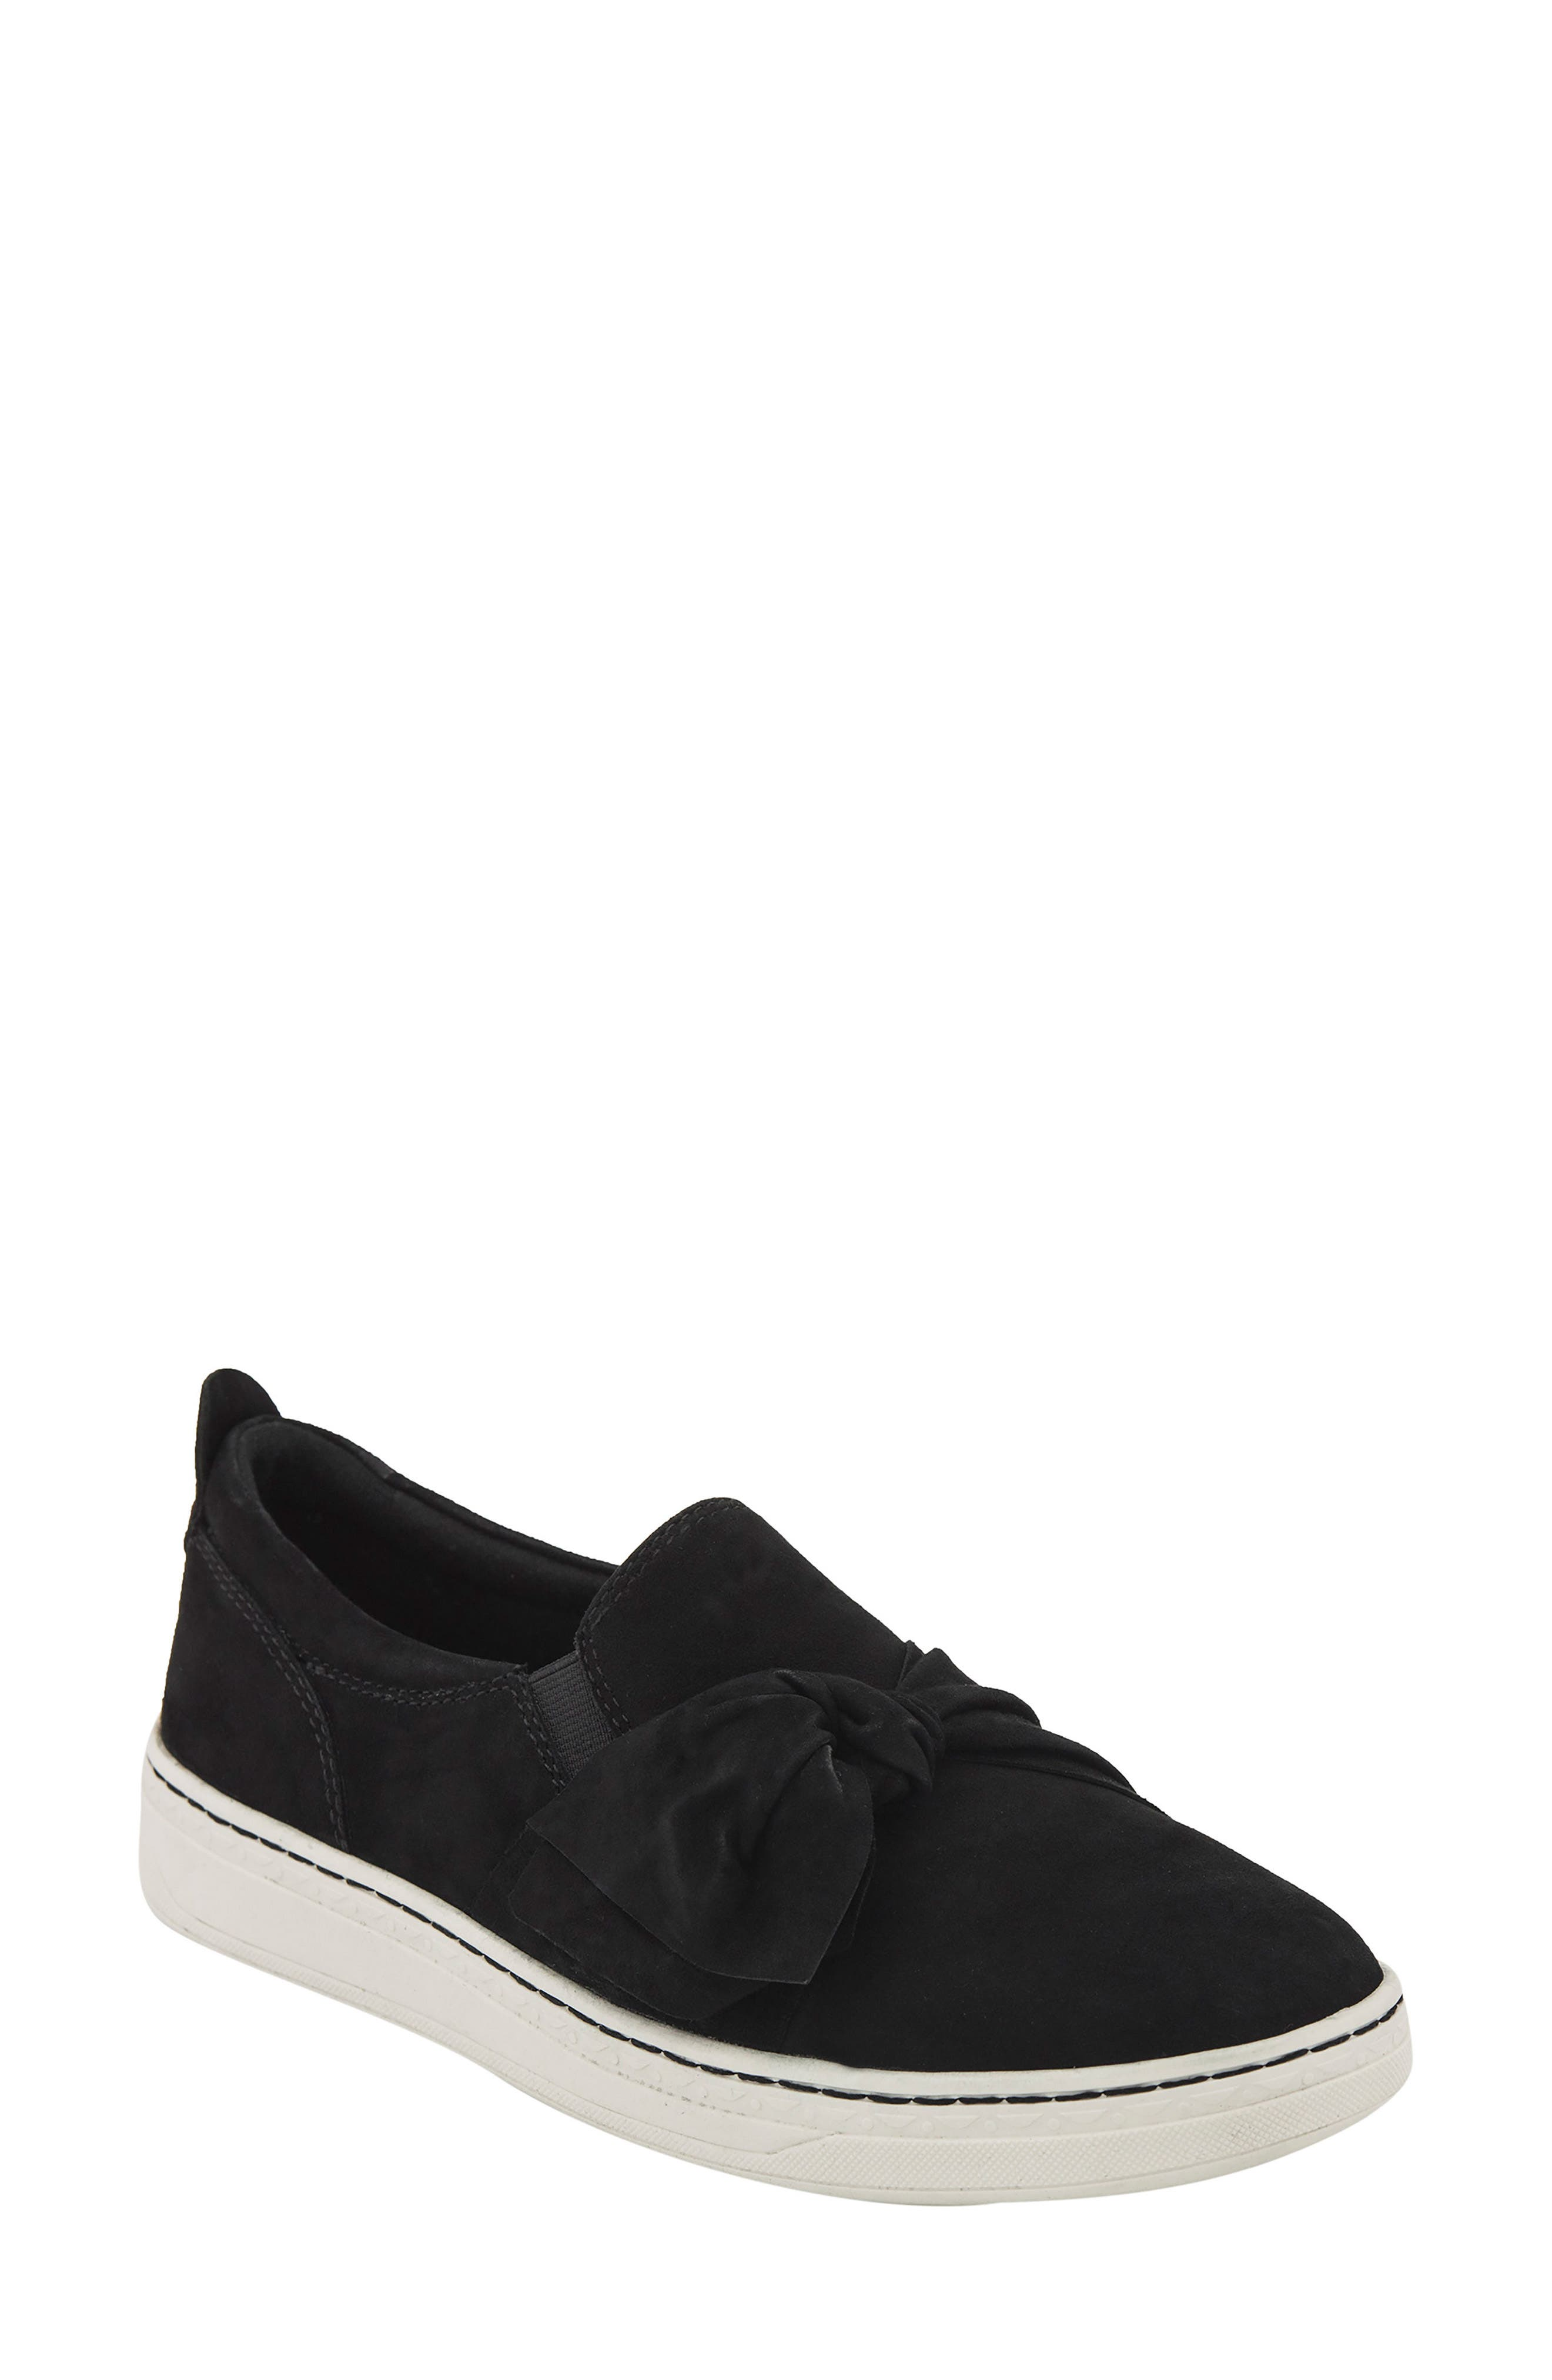 Zoey Slip-On,                             Main thumbnail 1, color,                             Black Suede Fabric